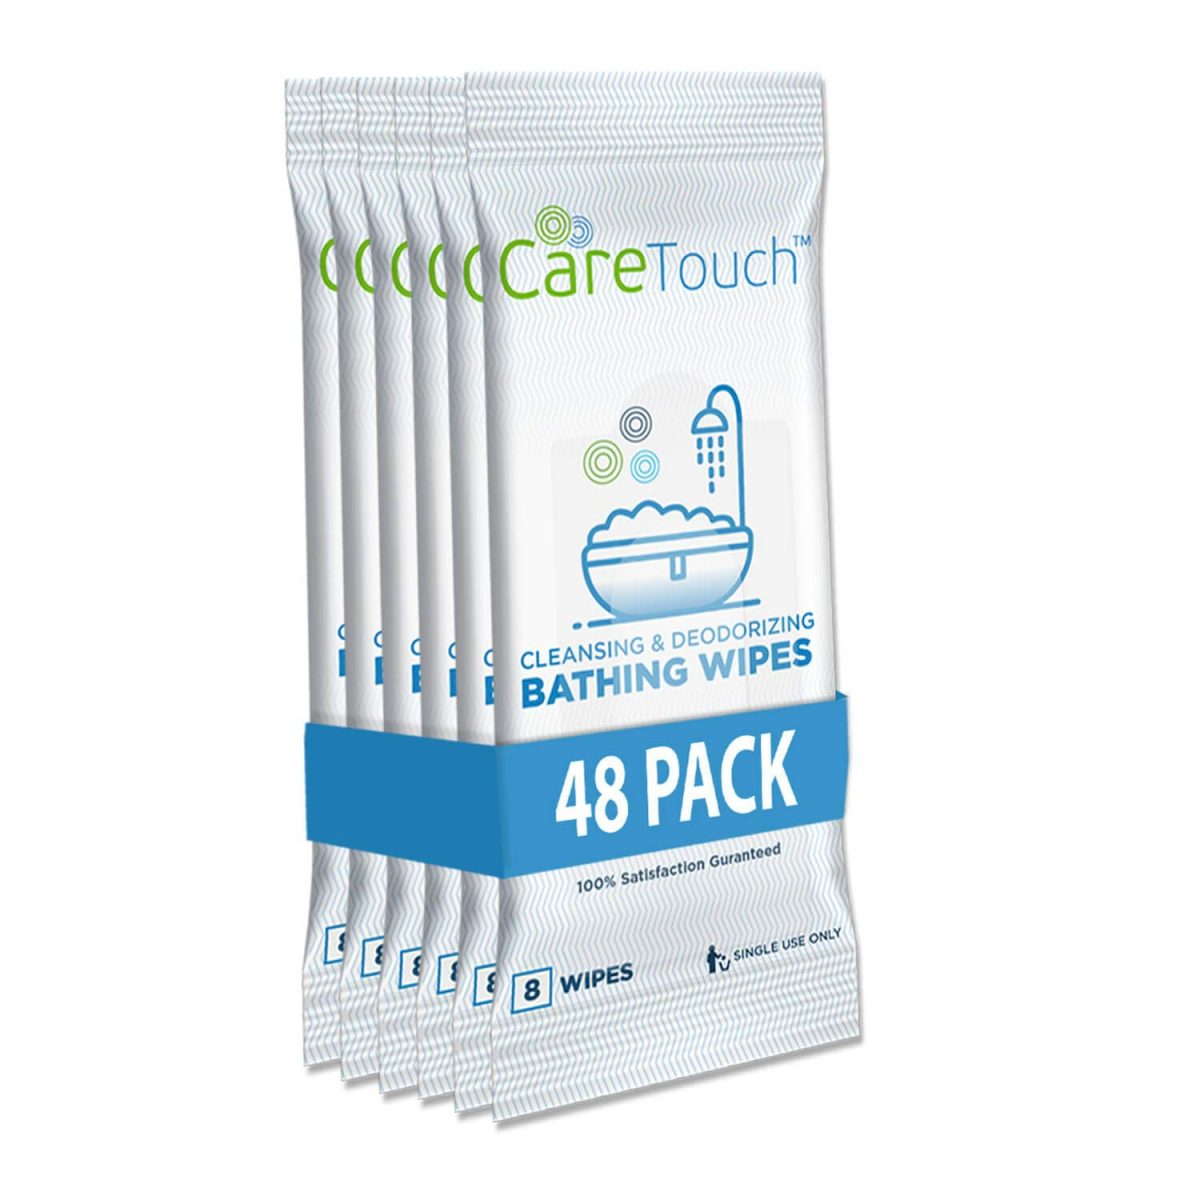 Care Touch Bathing Wipes